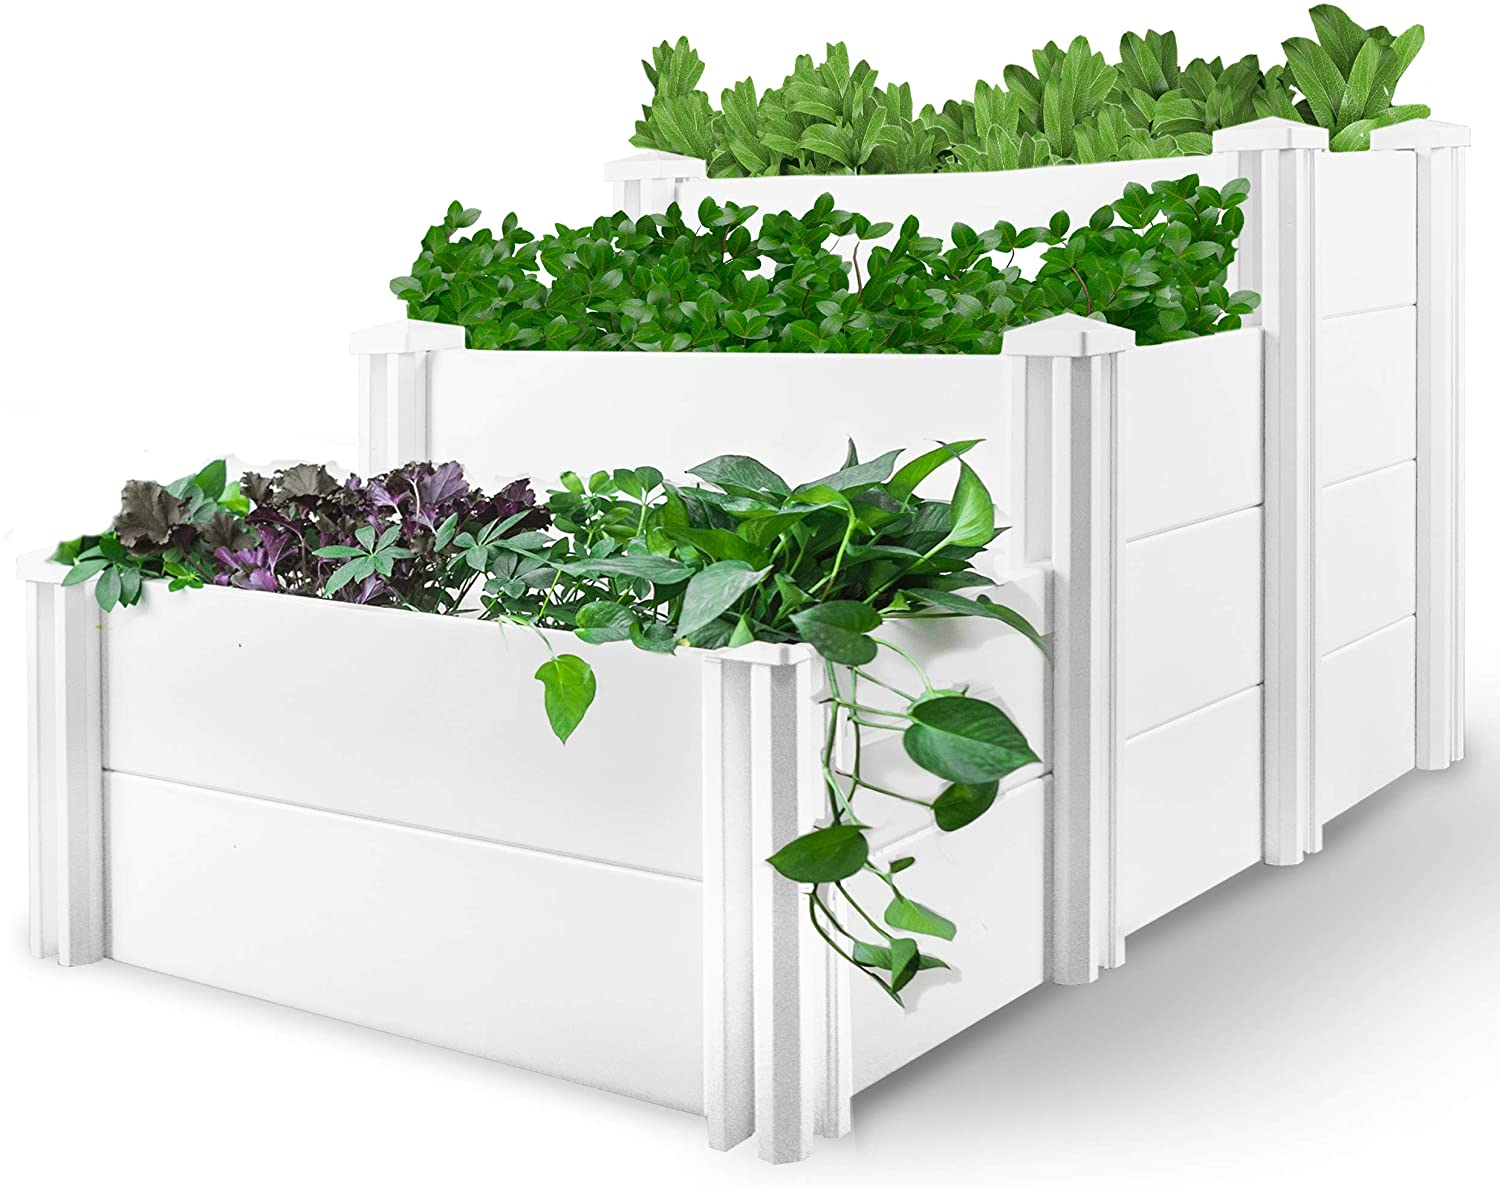 HEGEMONE Co. Tiered Raised Elevated Garden Bed Planter Box | For Organic Herbs, Vegetables, Plants, Flowers | Outdoor Planters Kit Stand | Screwless Easy to Assemble | Heavy-Duty Non-Toxic (PVC Vinyl)